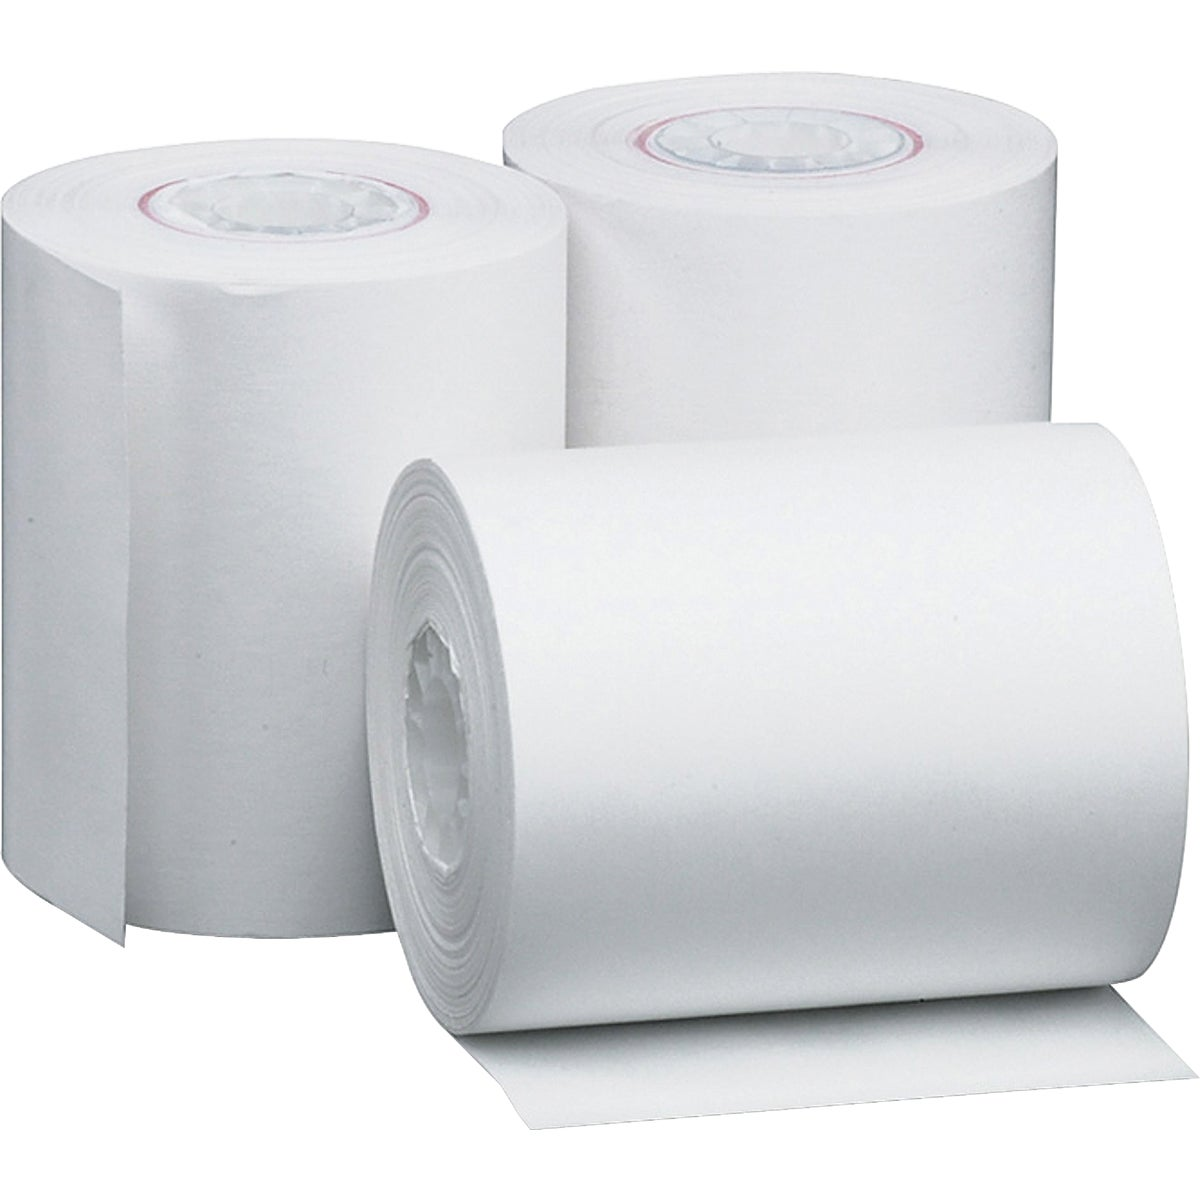 3PK CALCULATR ROLL PAPER - PMC05233 by United Stationers